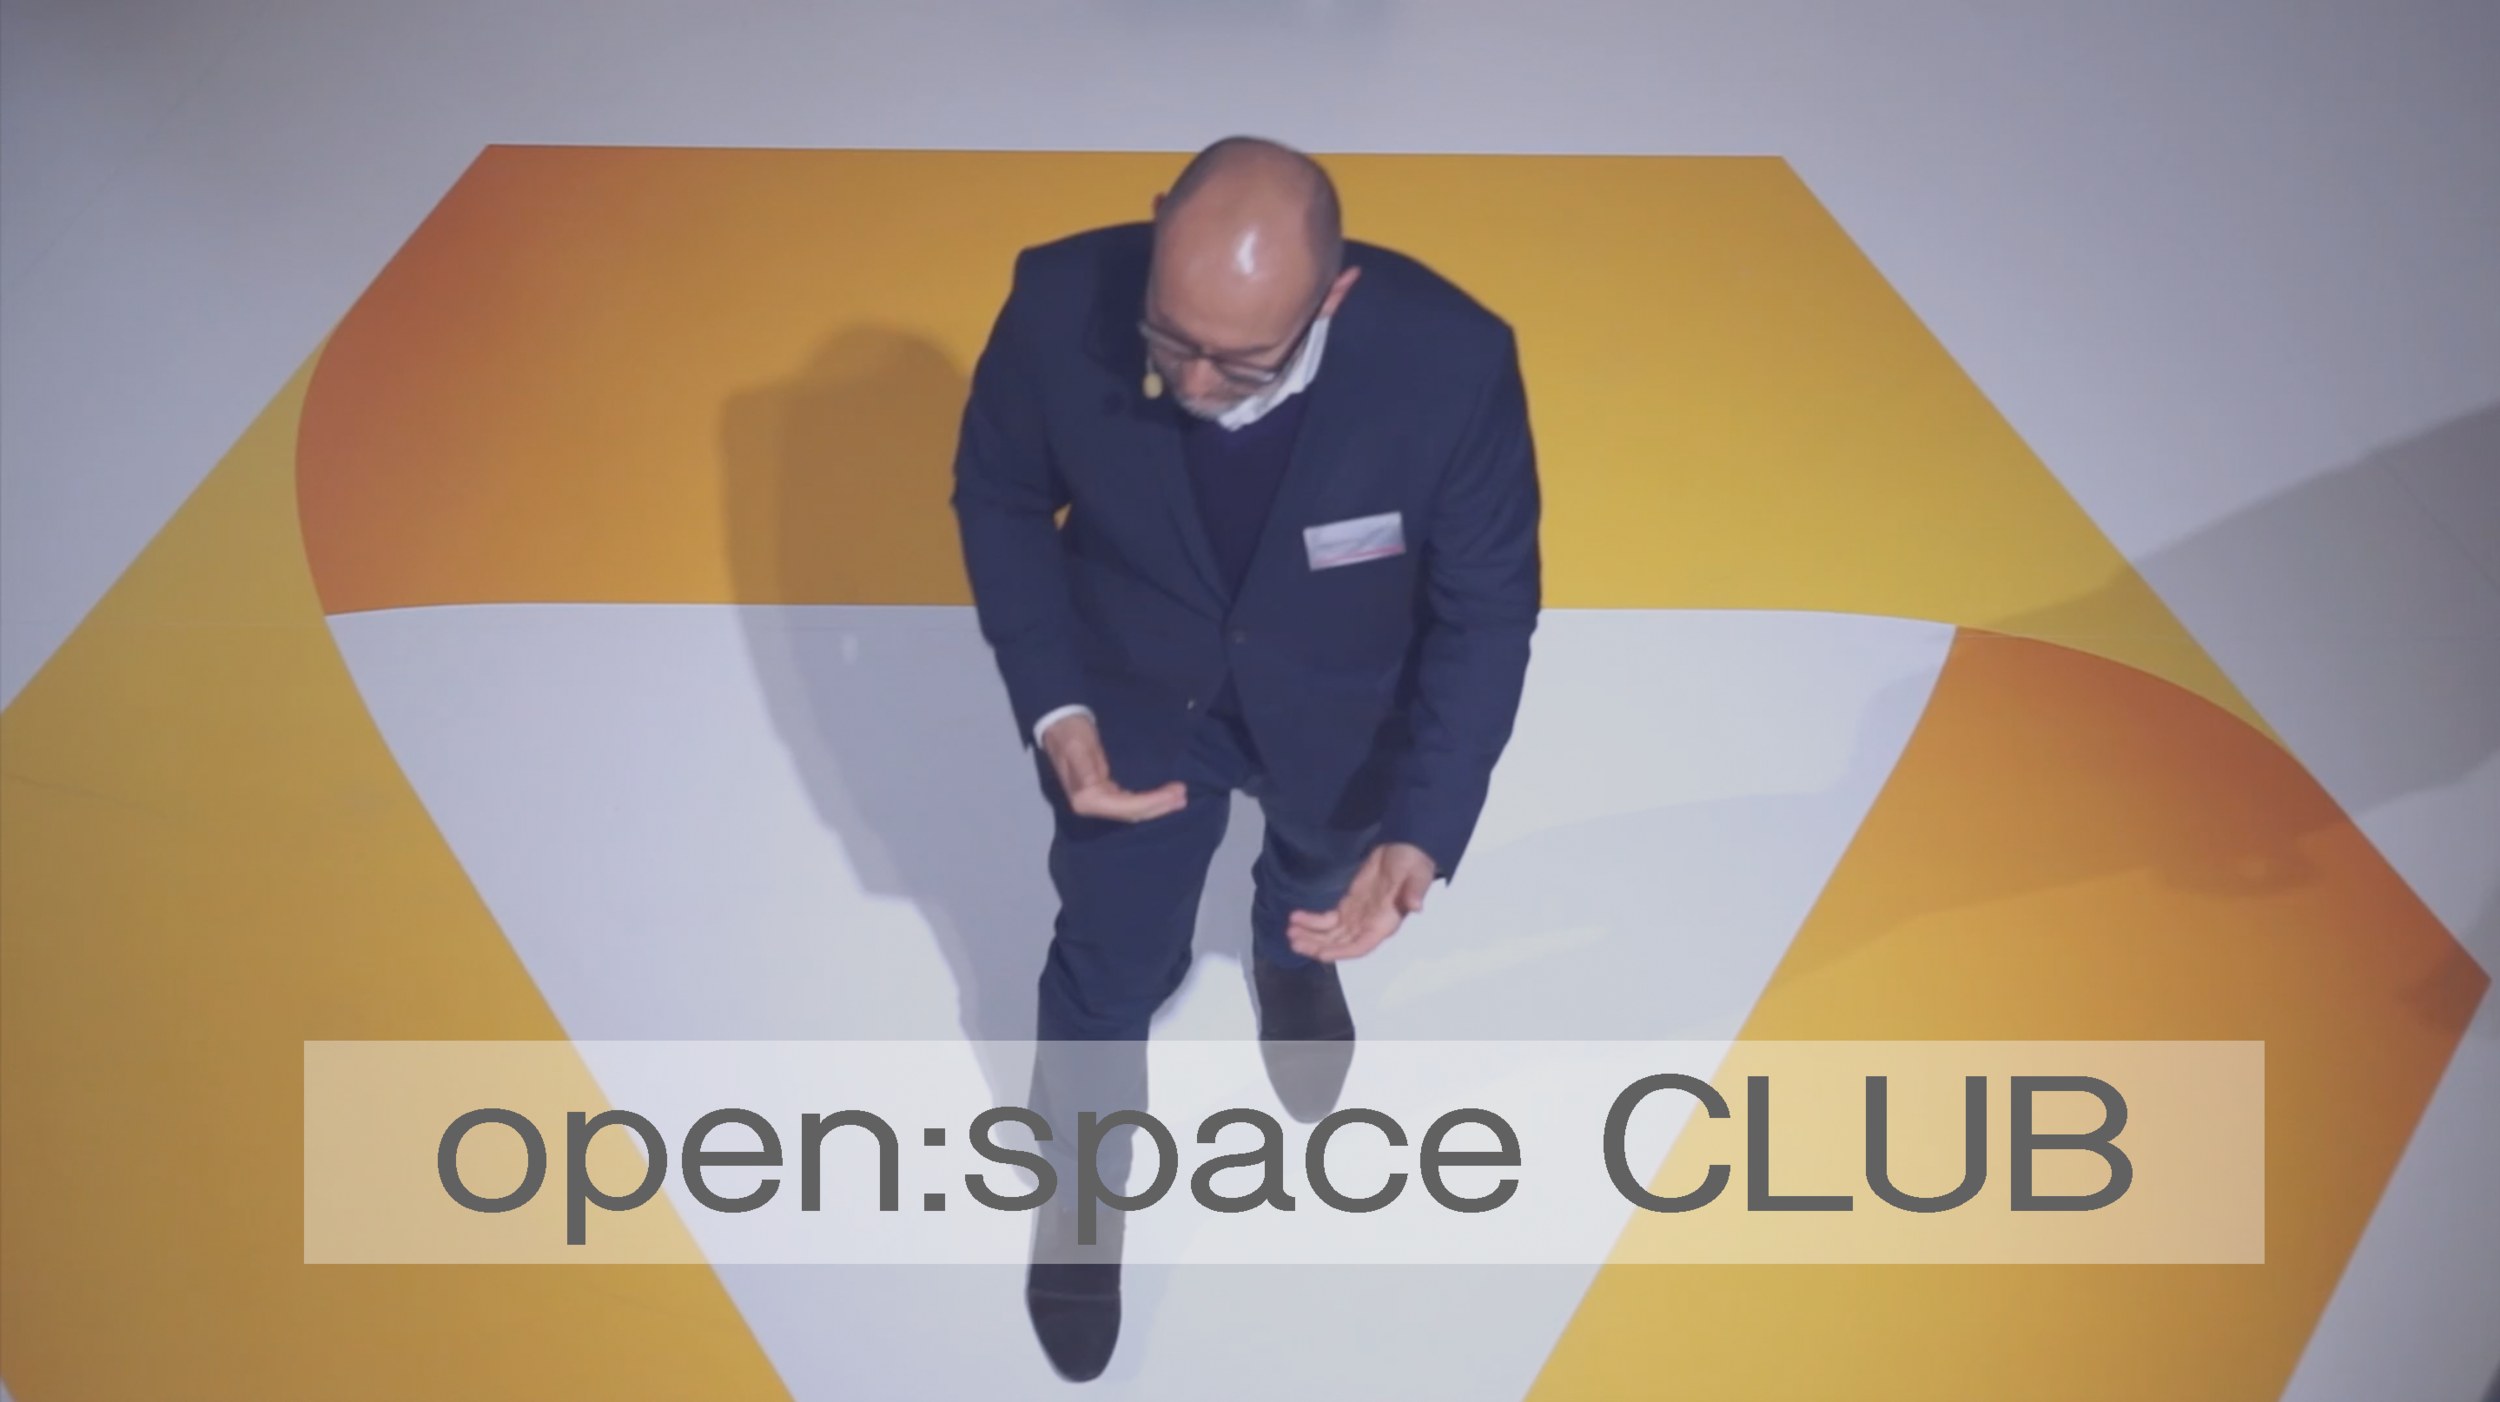 COMMERZBANK / OPEN:SPACE CLUB